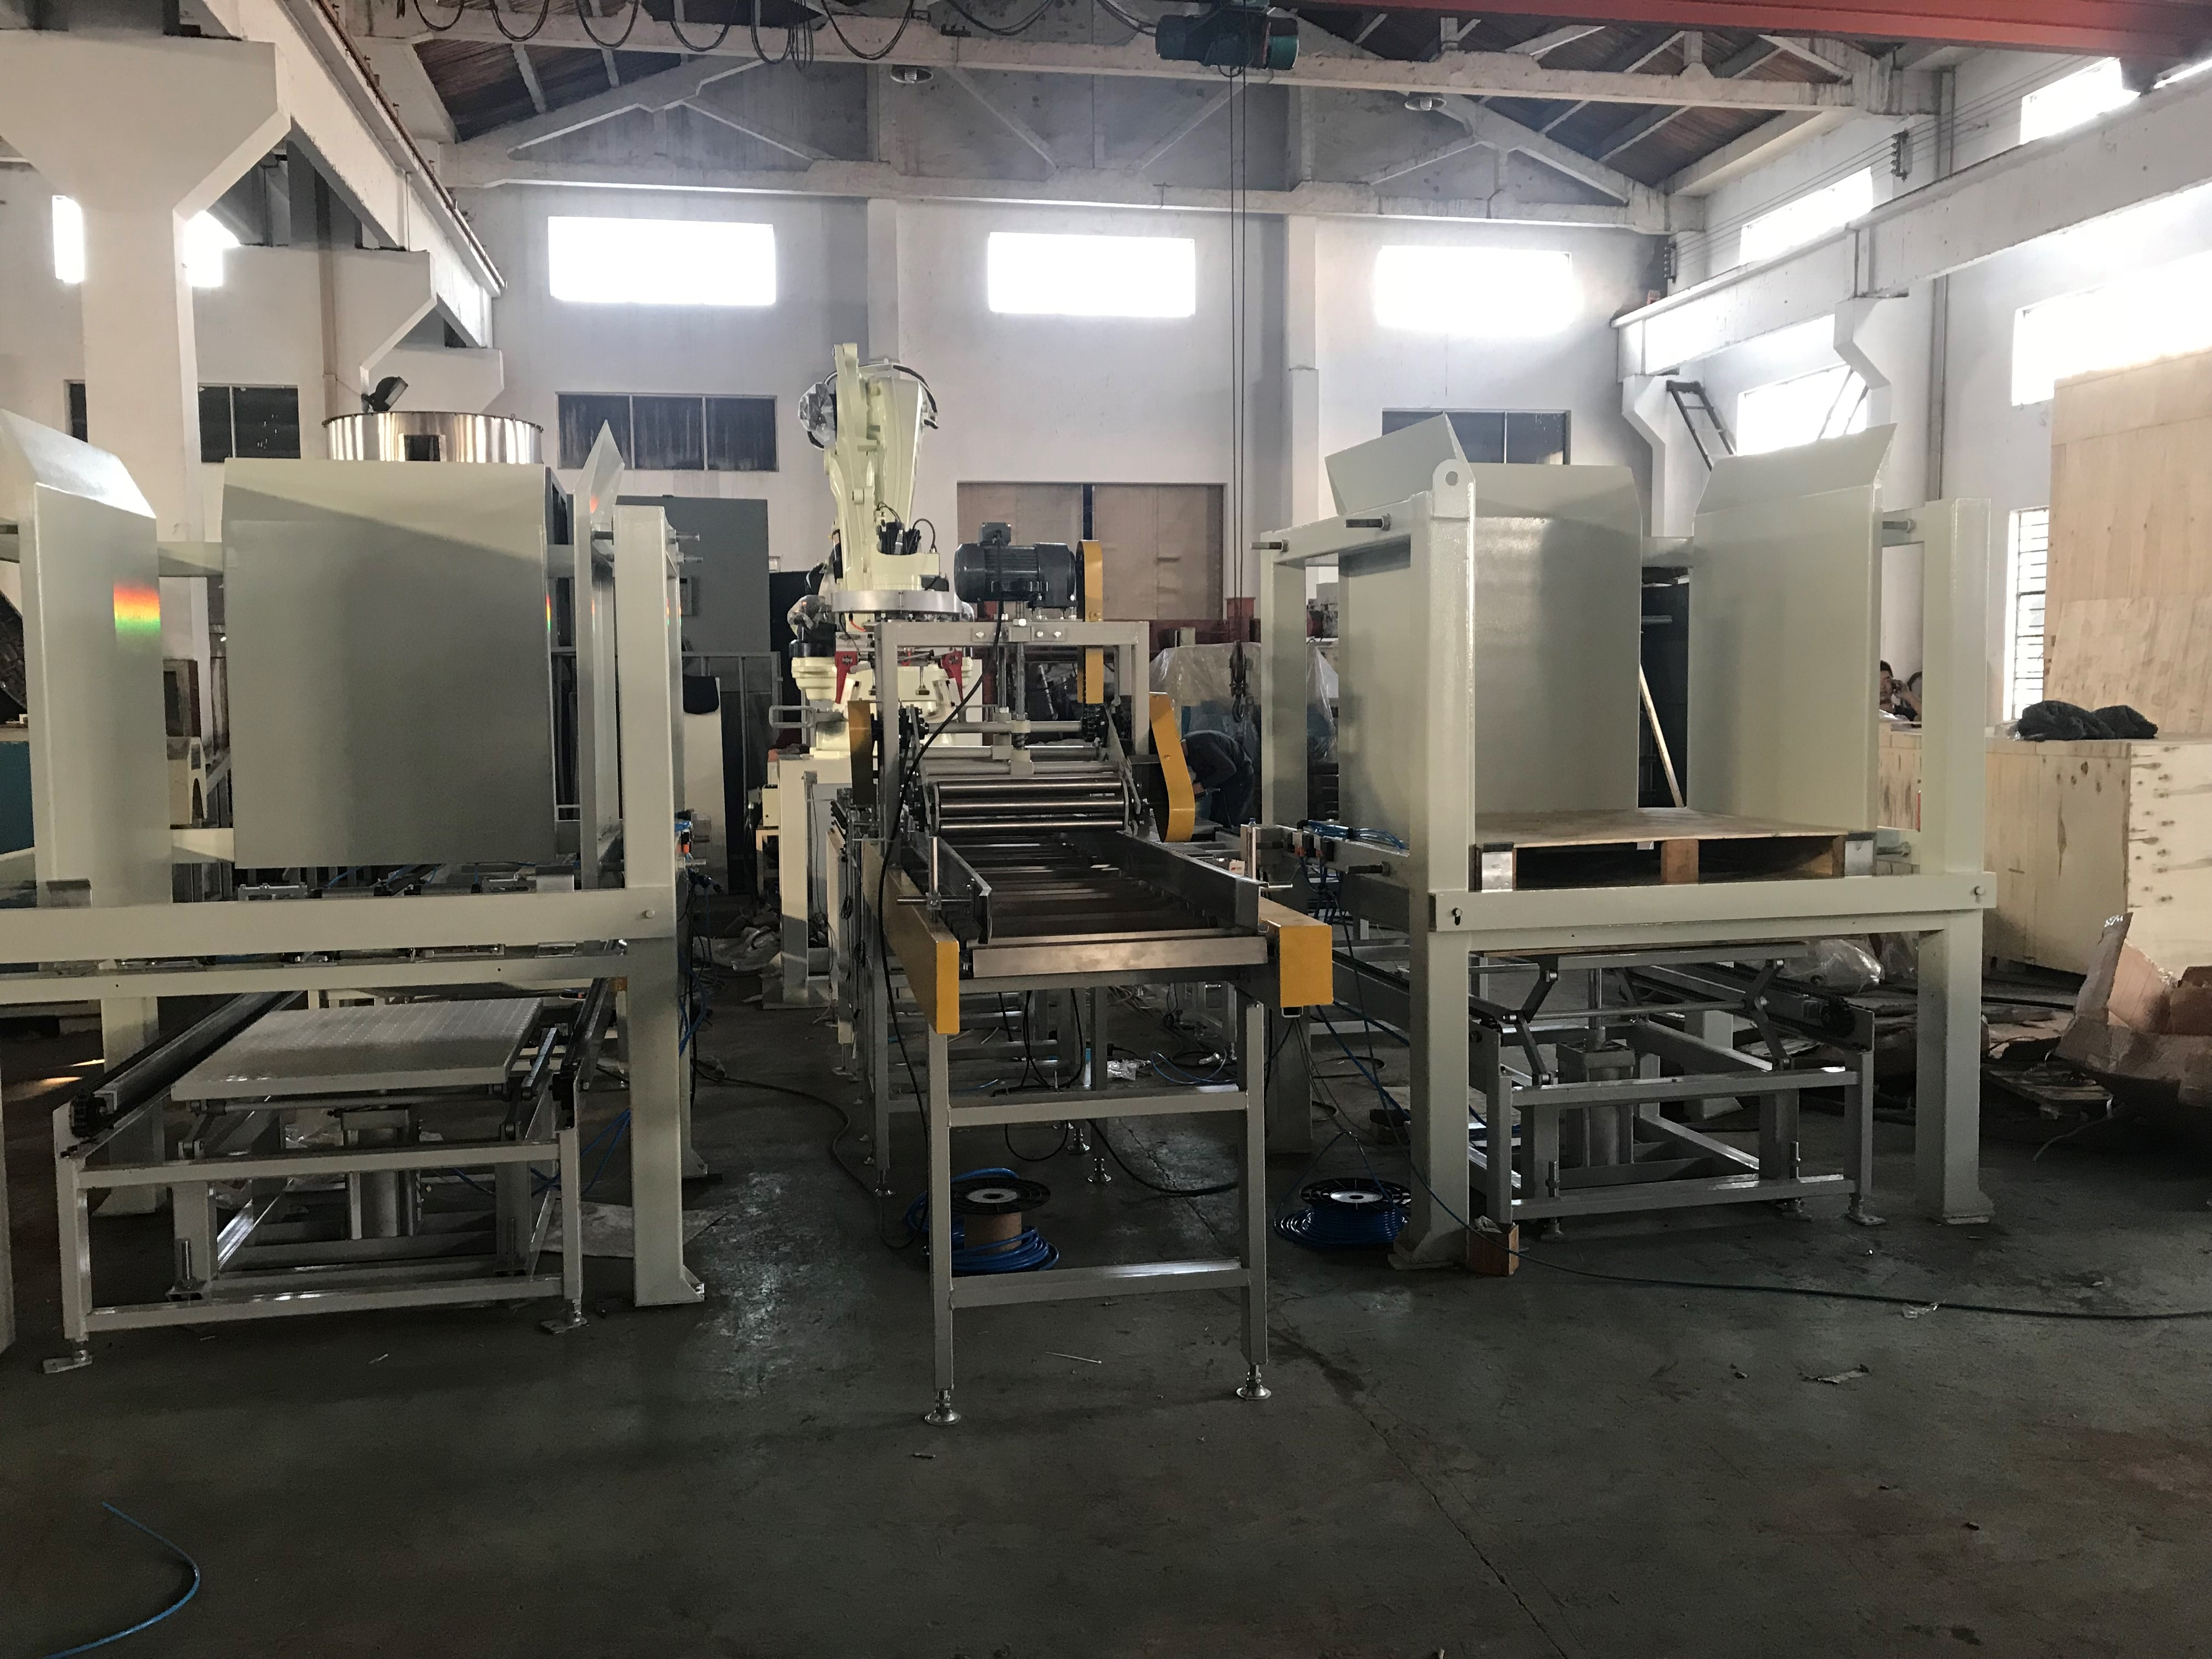 Automatic bag weighing and packaging equipment Robotic palletizing equipment packaging equipment  Automatic bagging machine Auto Packer for NPK and Urea fertilizers full automatic packaging line full